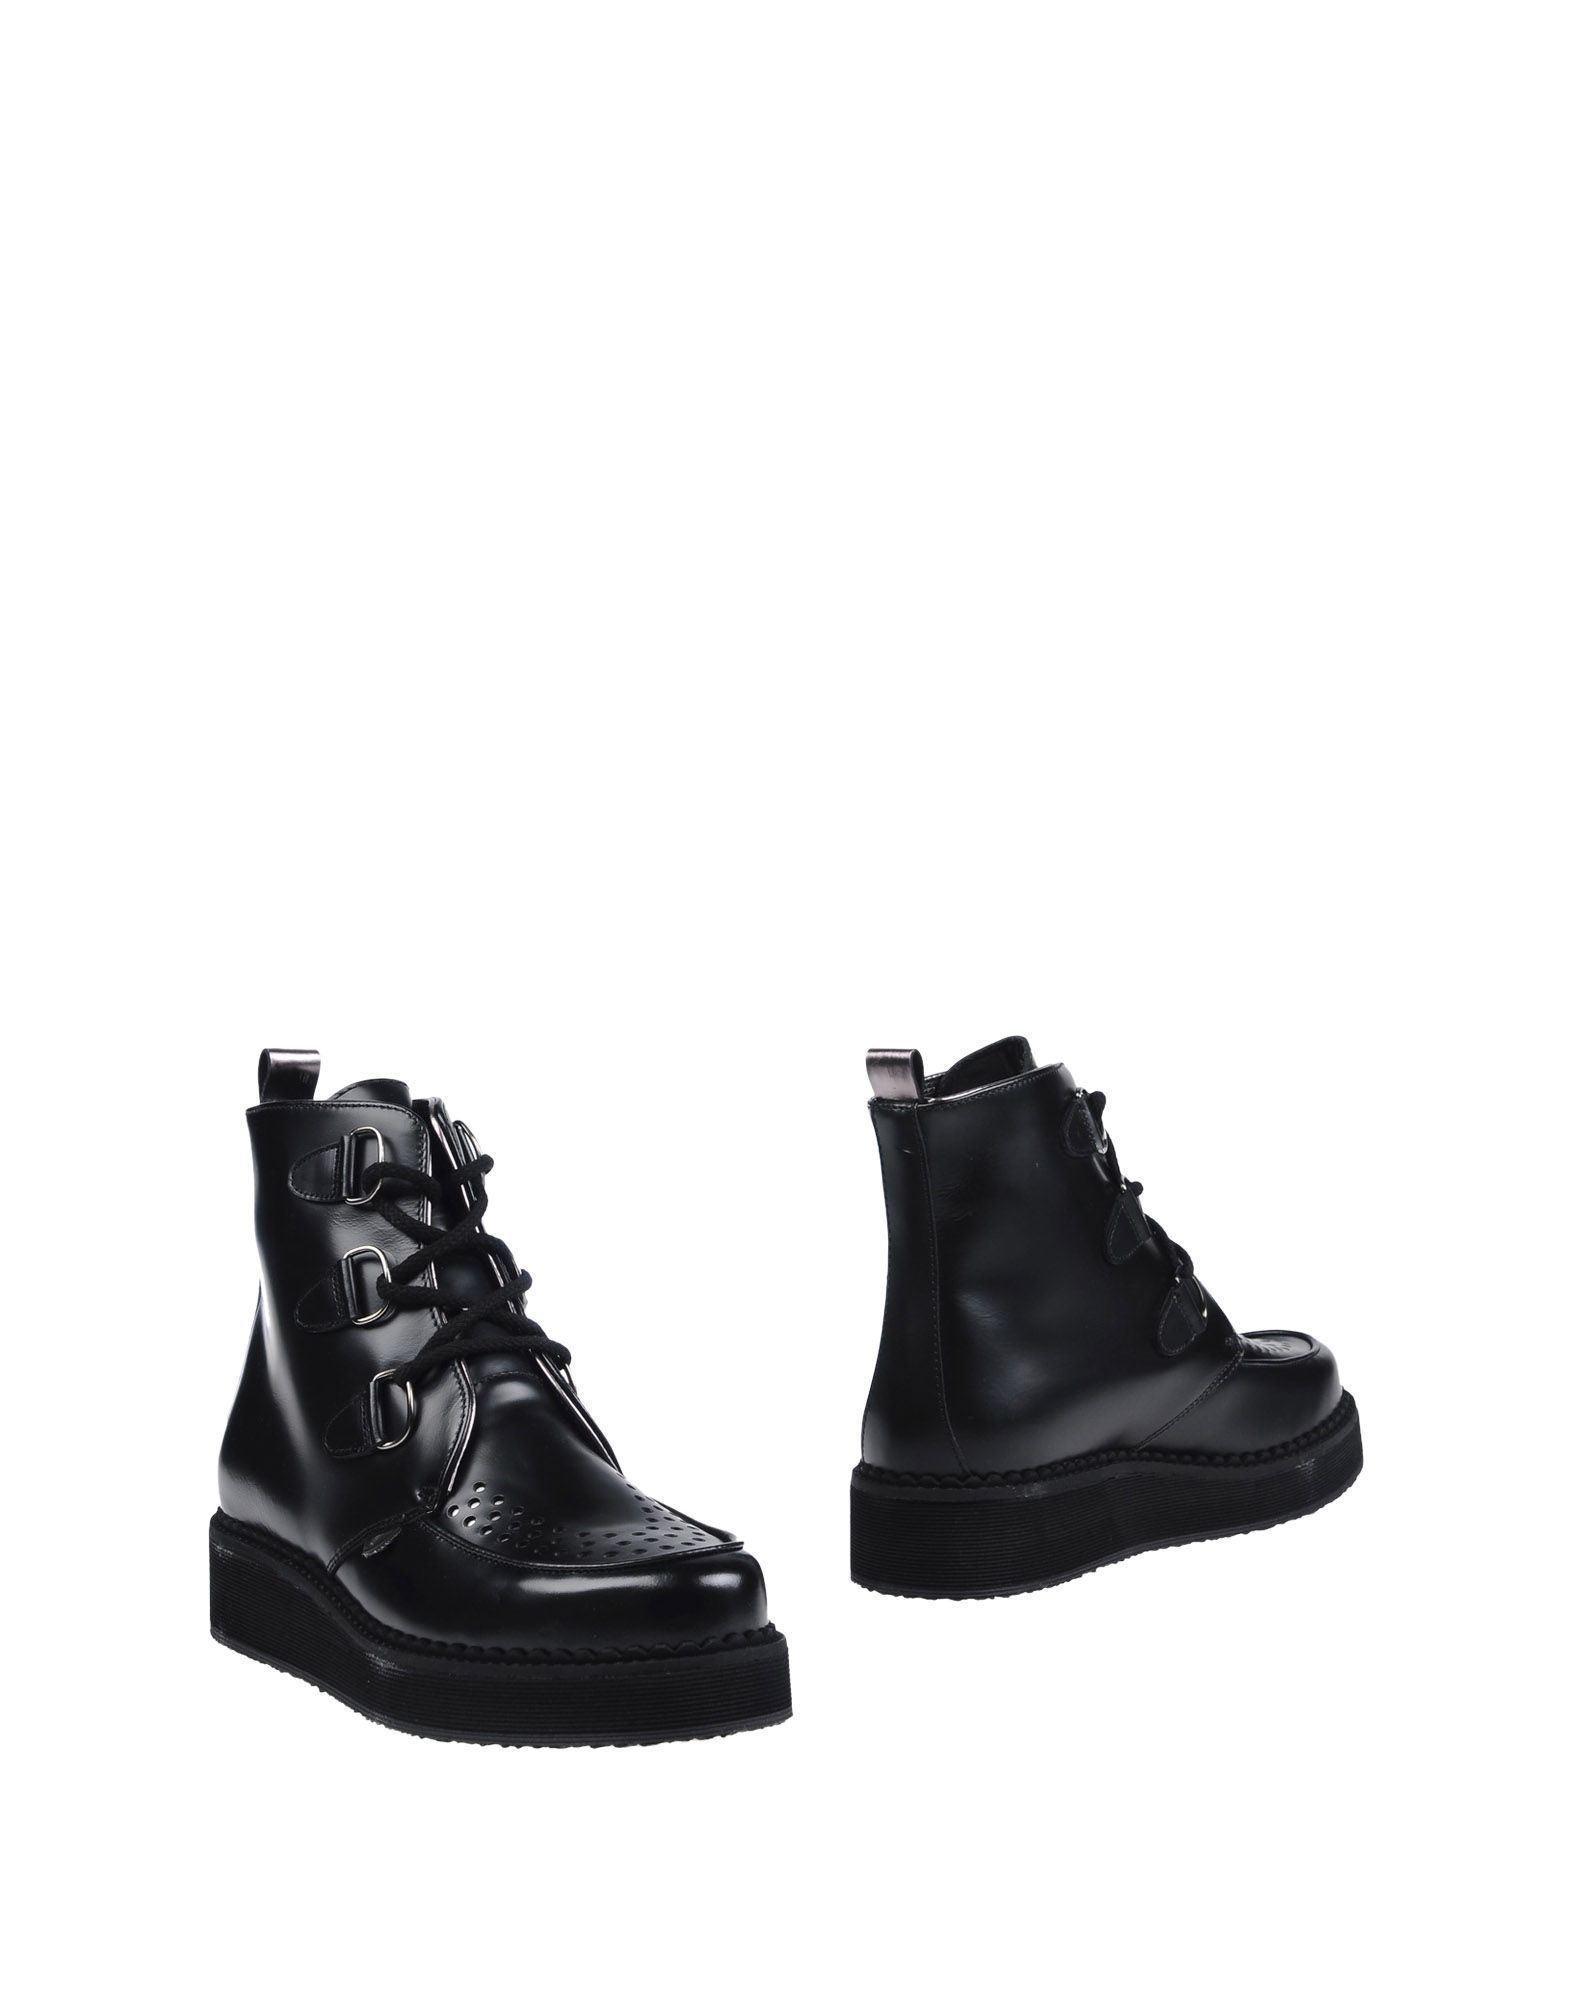 LE QARANT Ankle boots Inexpensive for sale big sale cheap online cheap huge surprise cost sale online recommend for sale xVAJ3RNh